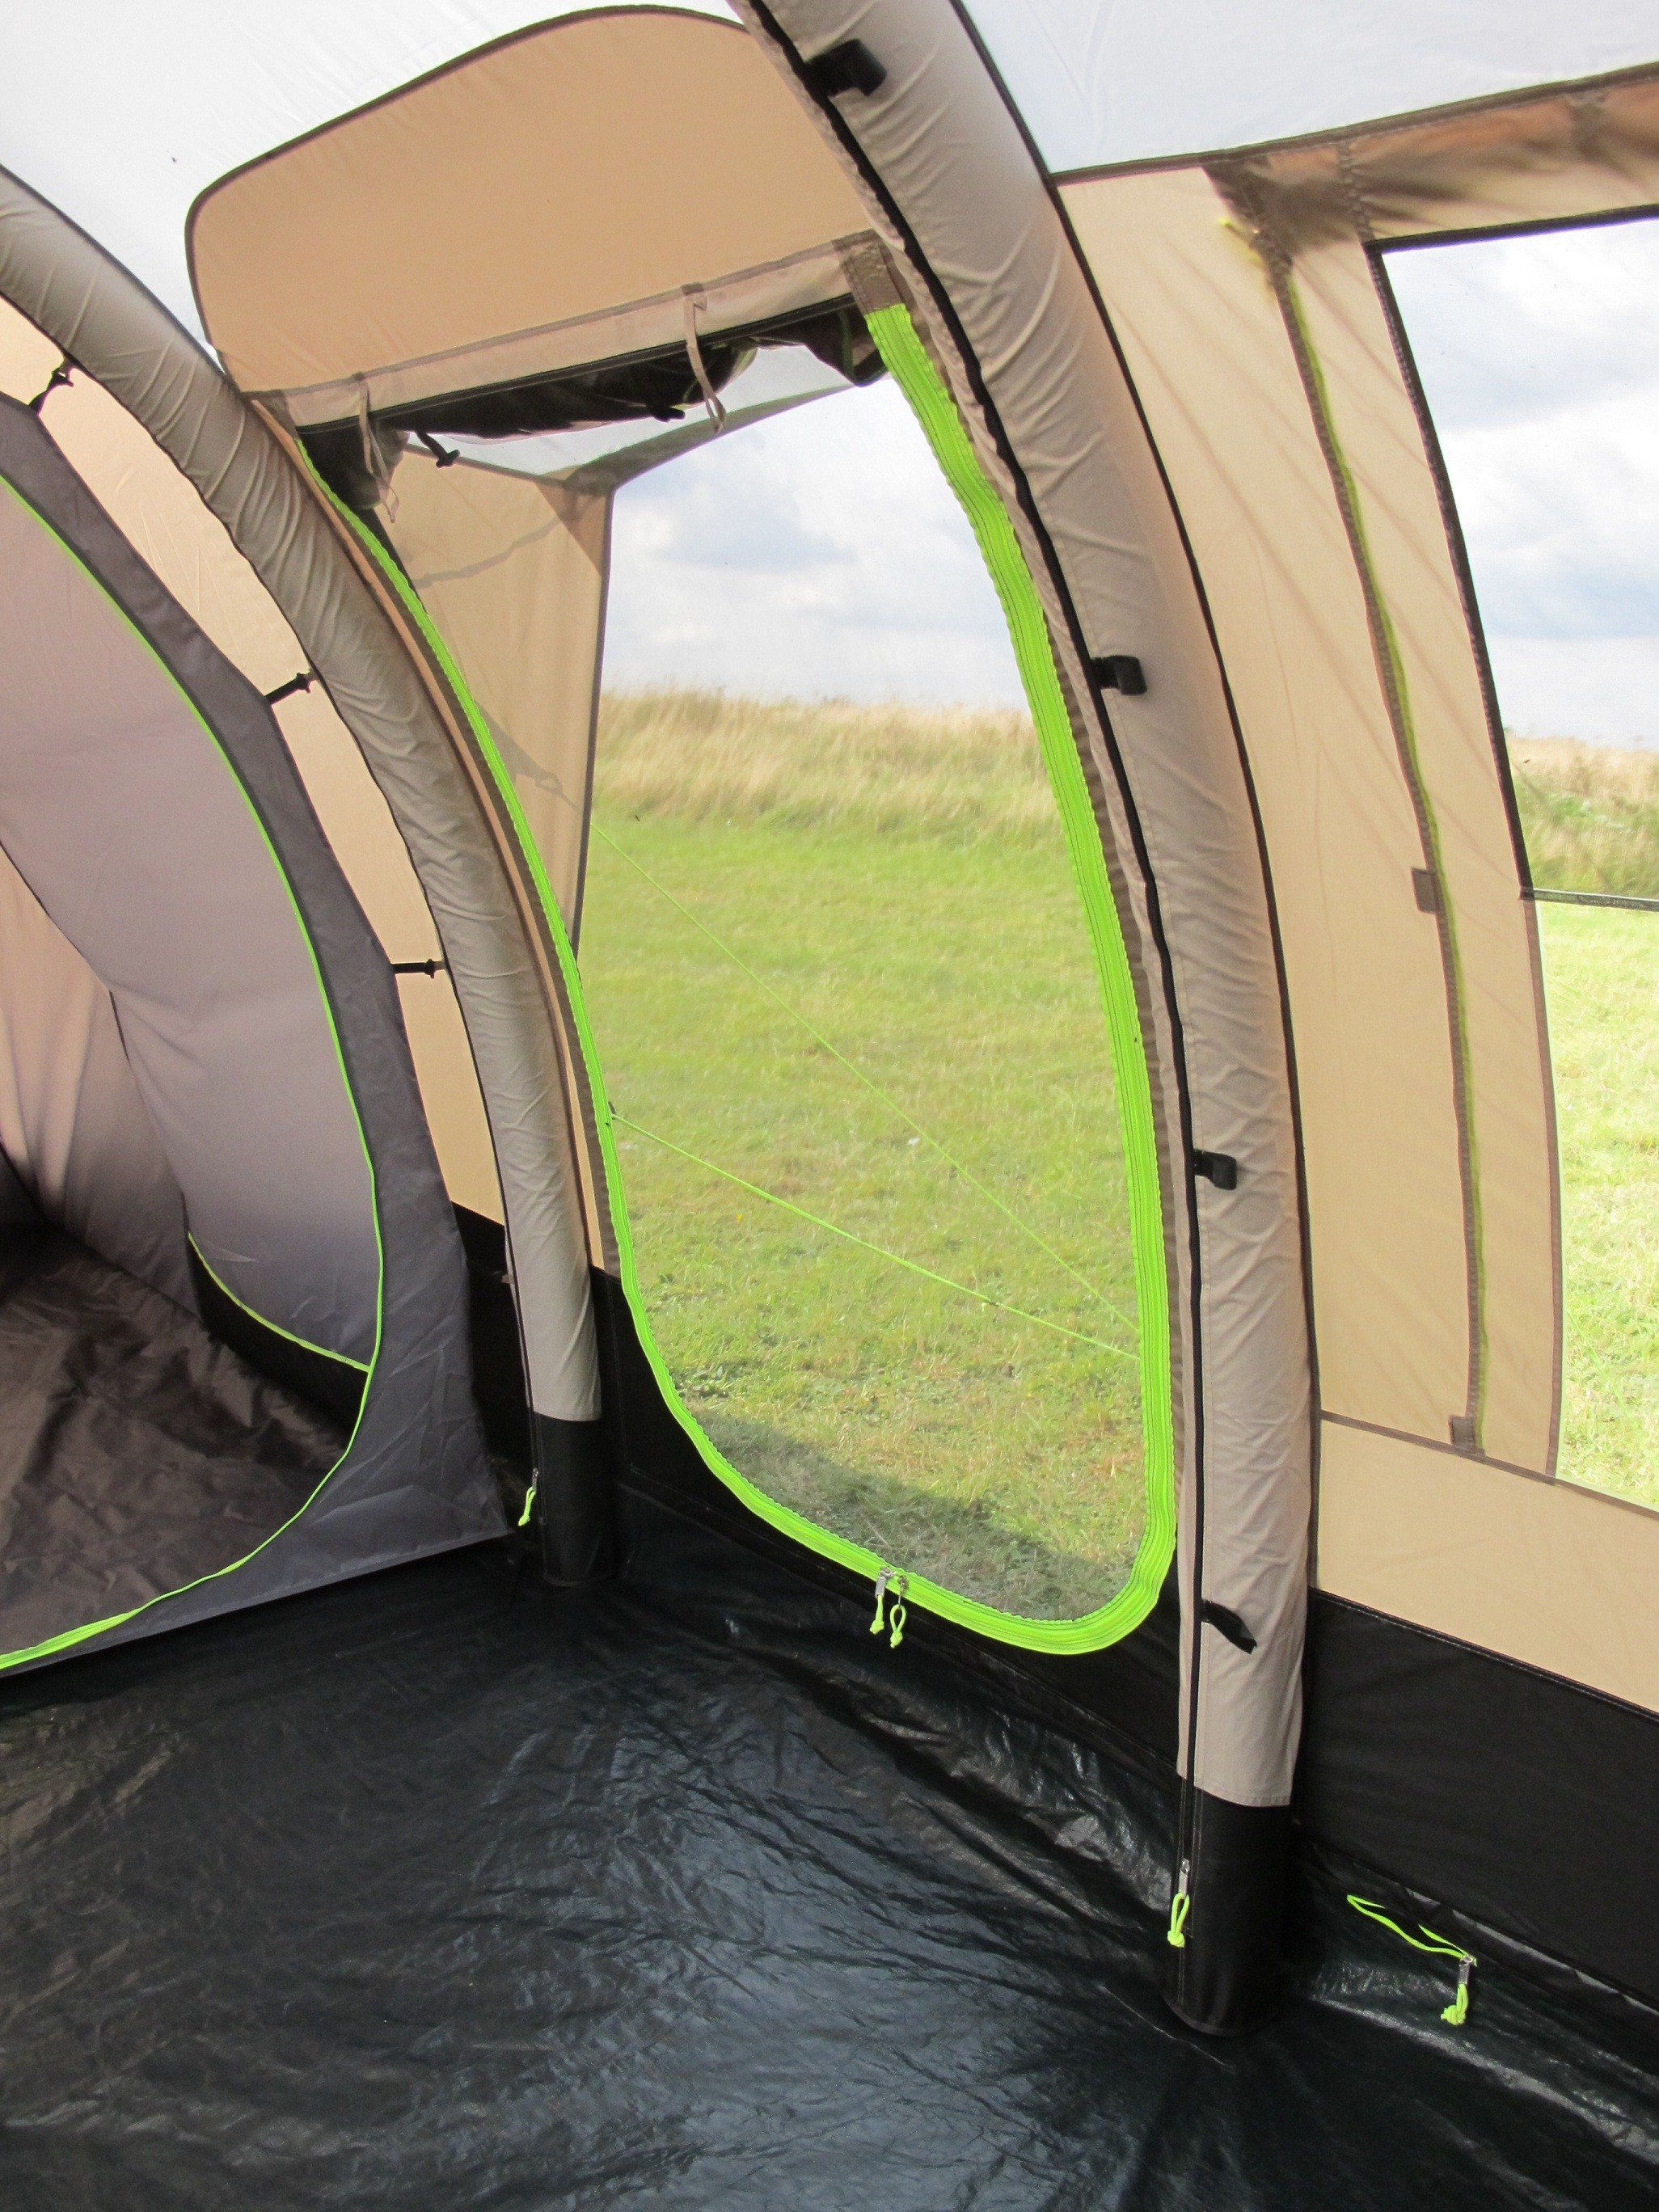 & Kampa Southwold 8 AirFrame Tent Package